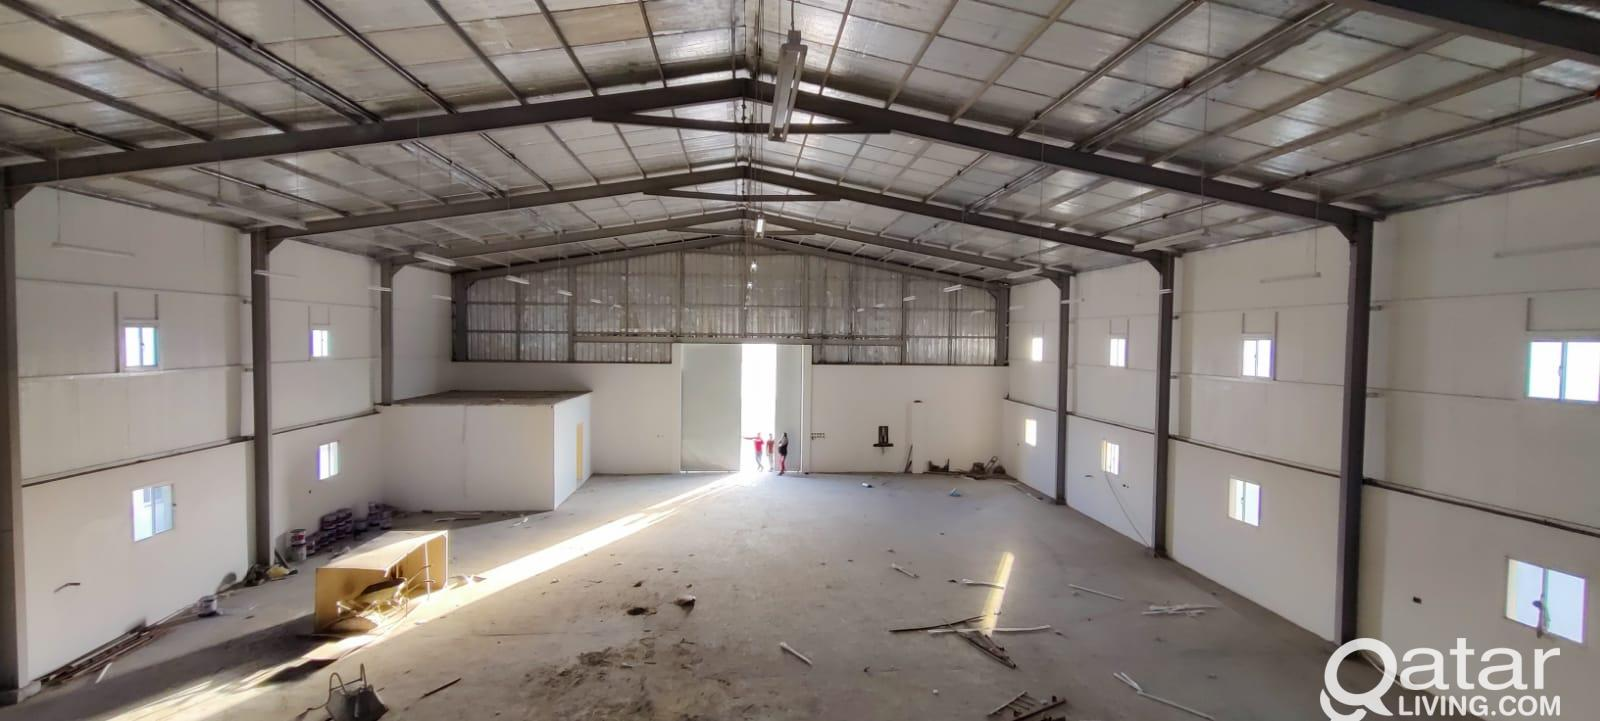 180 Room & 1500 Store  - For Rent